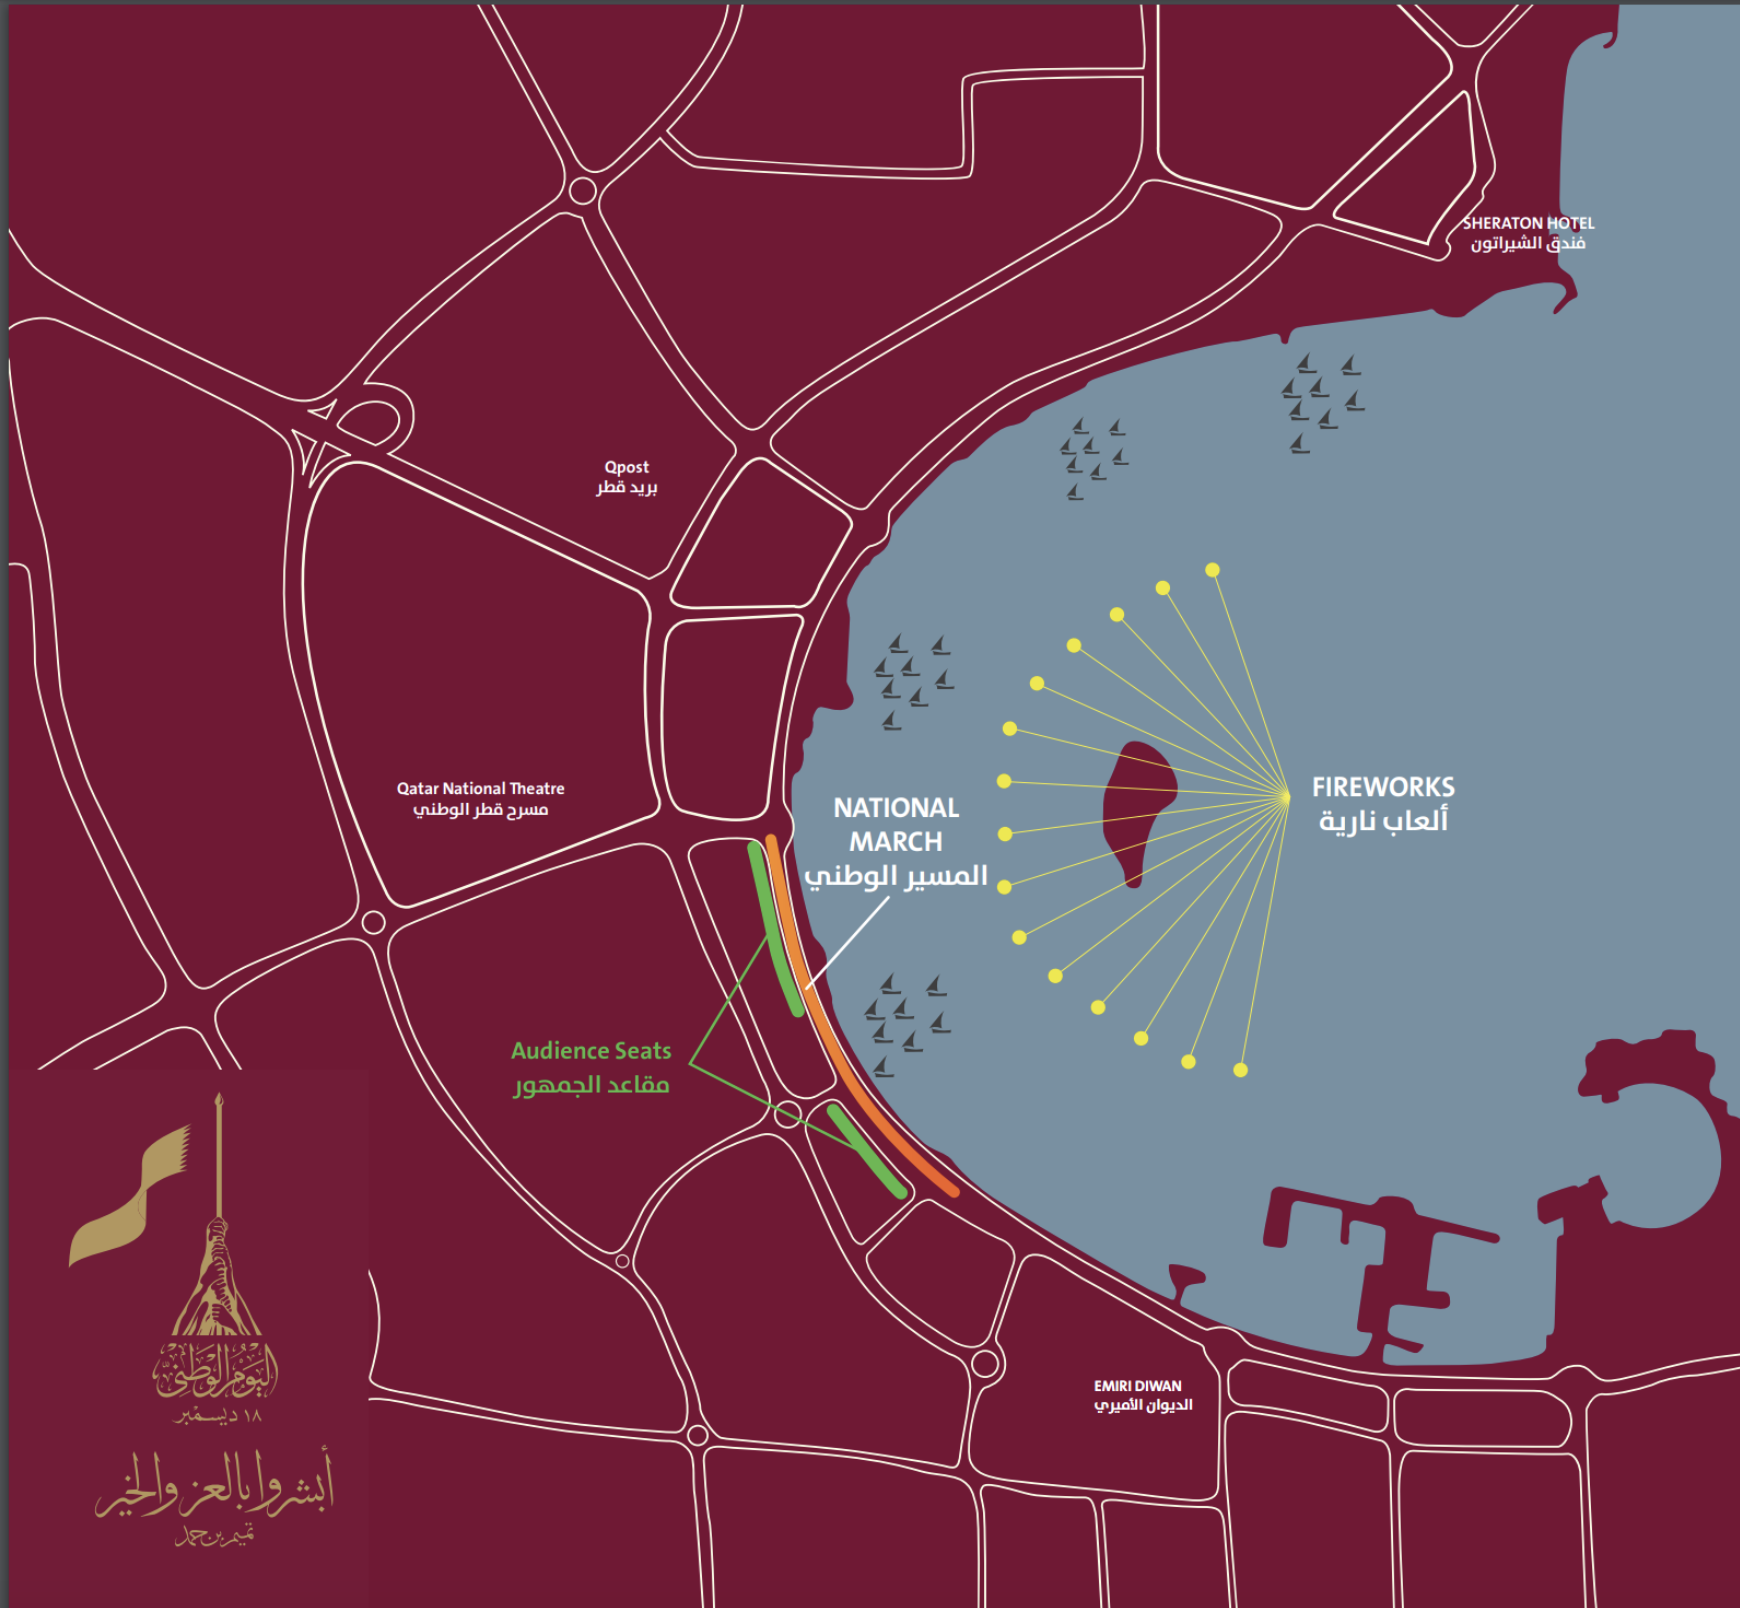 When, where and how to watch the Qatar National Day parade… | Qatar ...